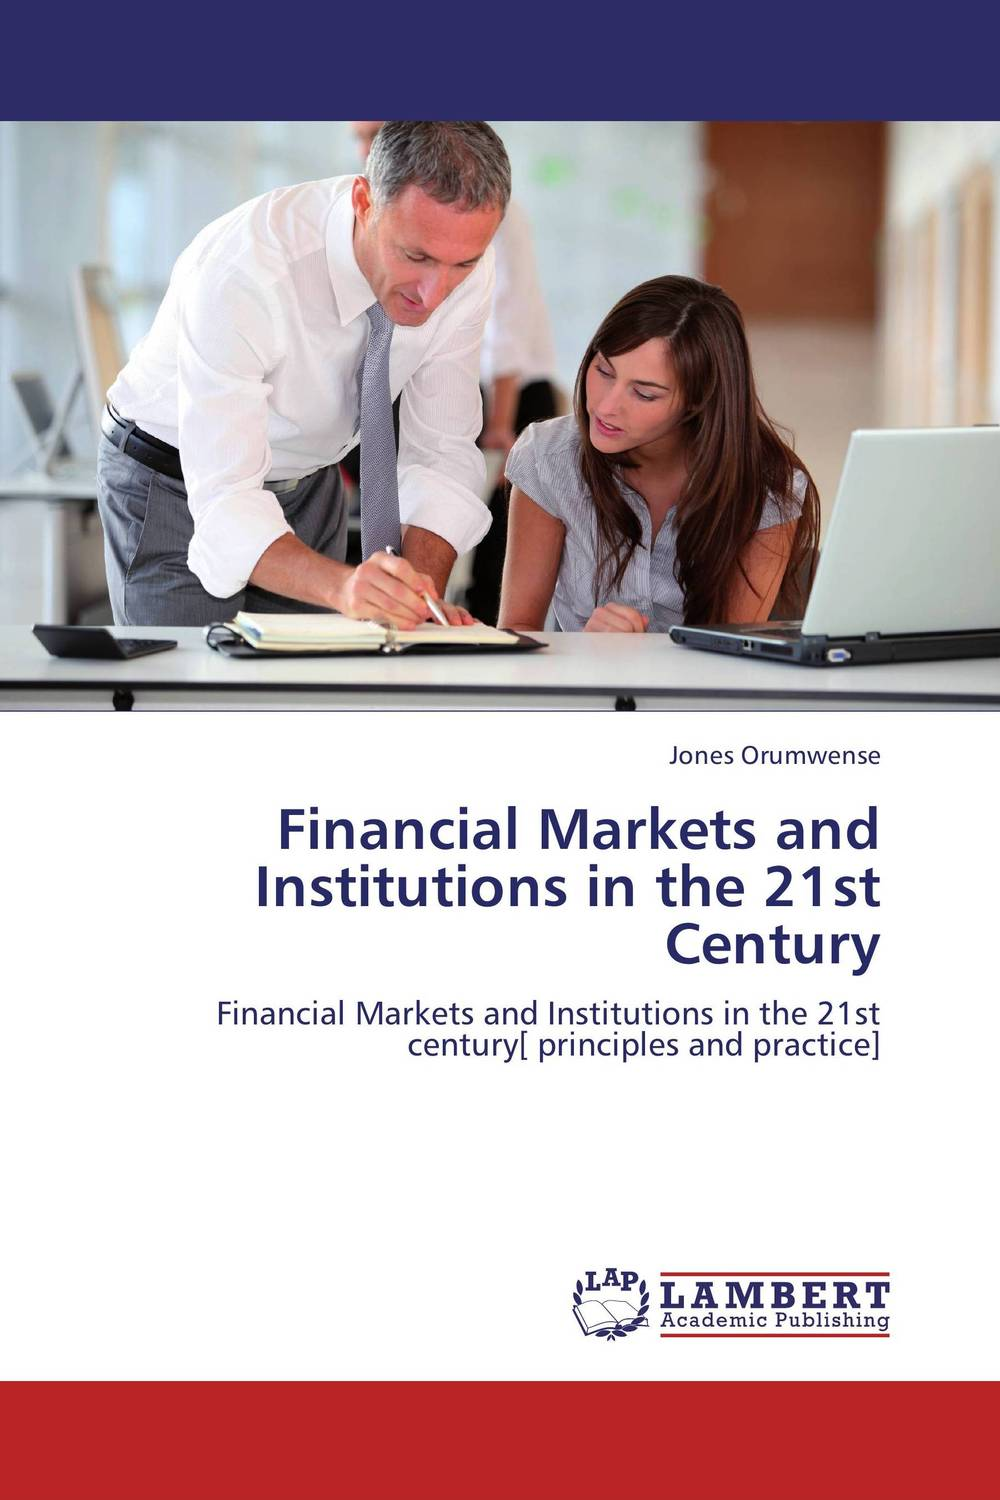 Financial Markets and Institutions in the 21st Century  managing operational risk in financial markets